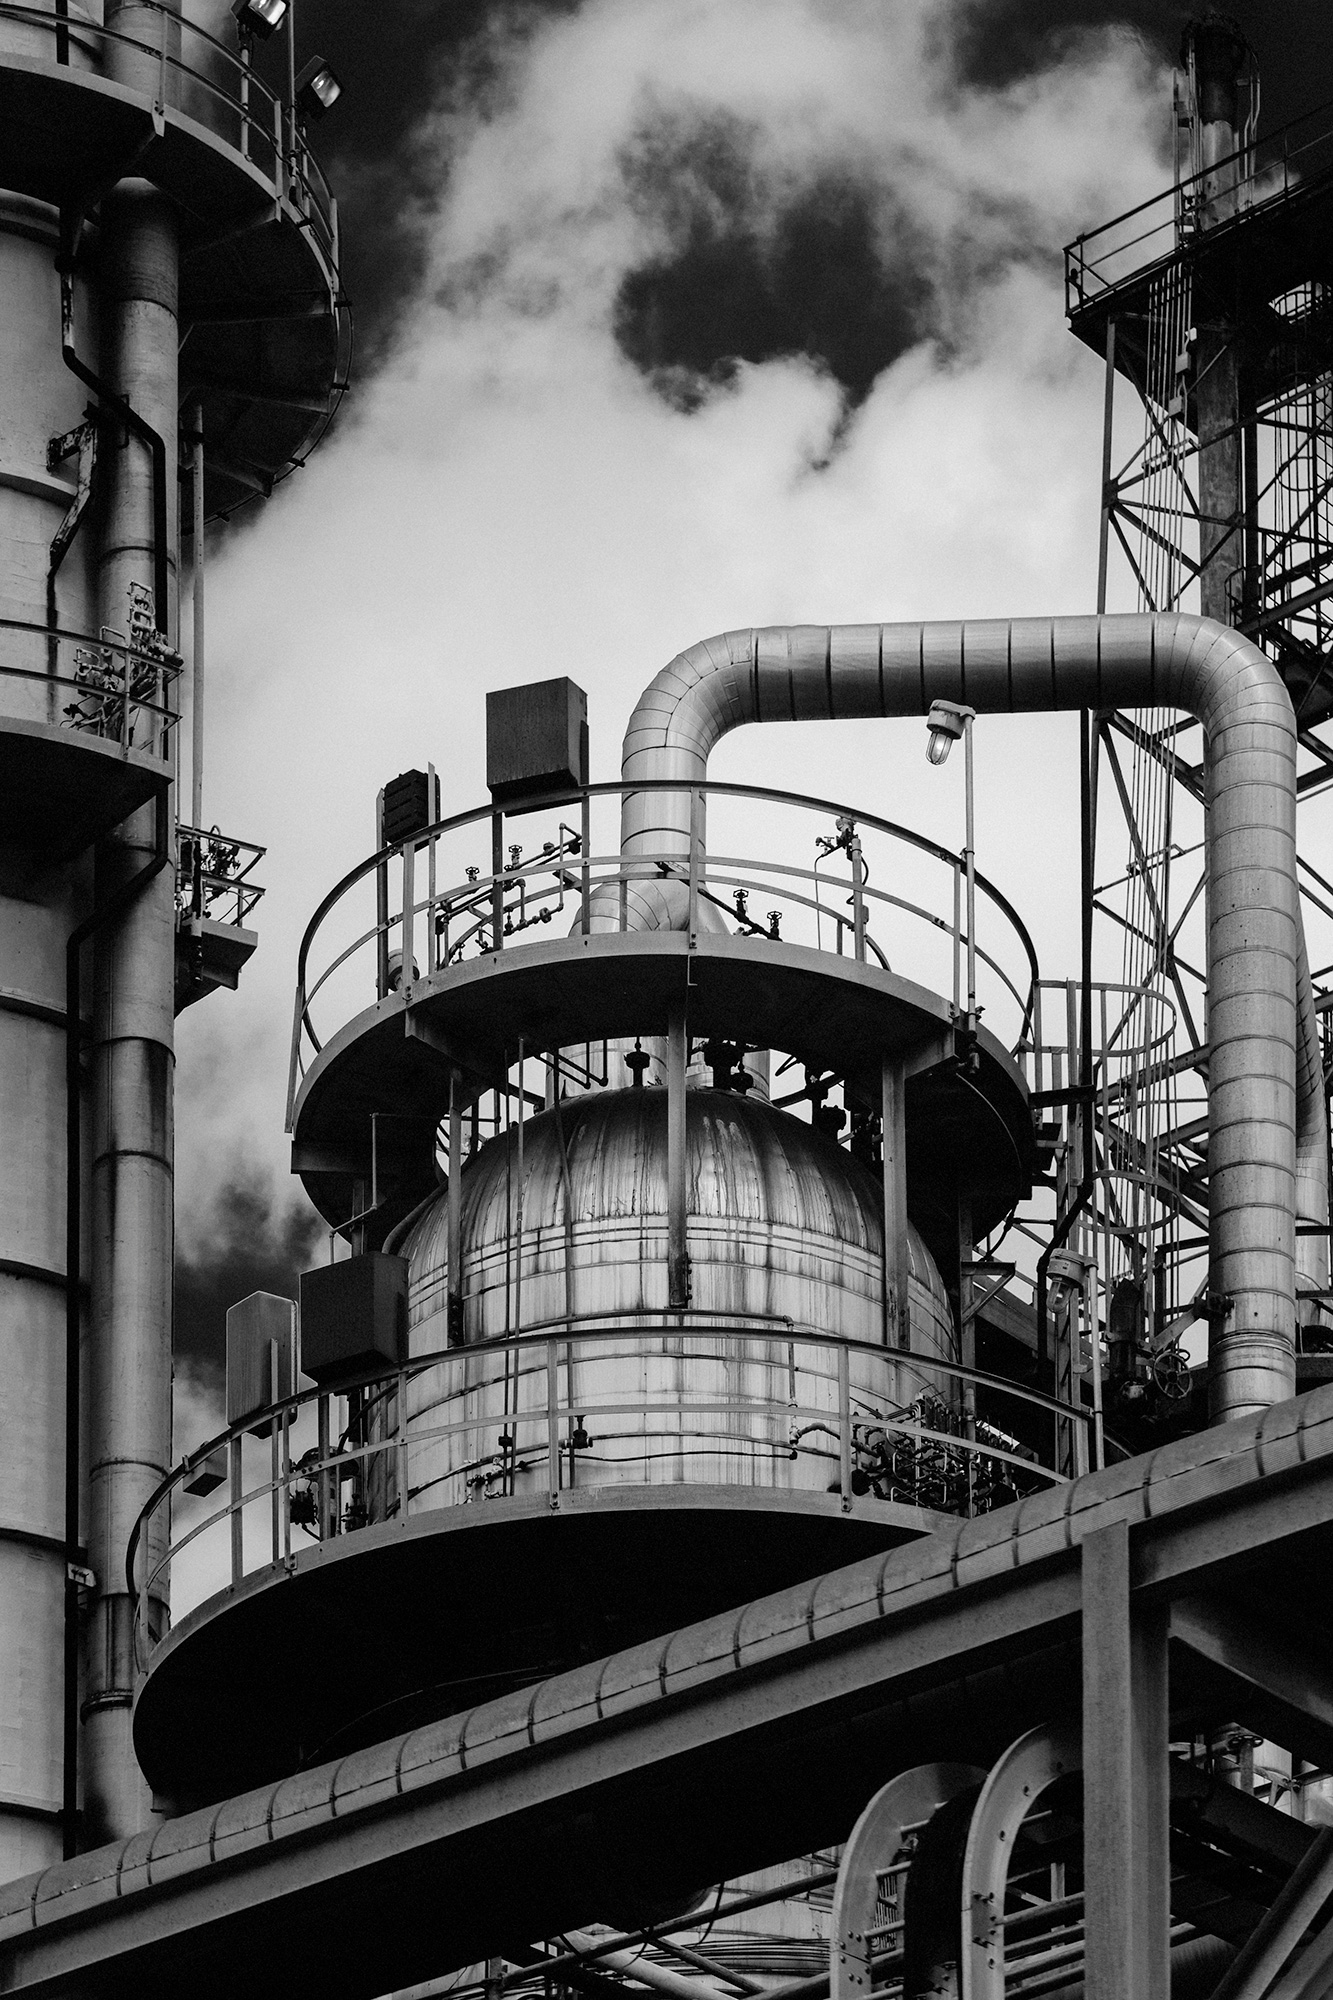 An oil & gas production facility photographed by Houston photographer, Todd Spoth.